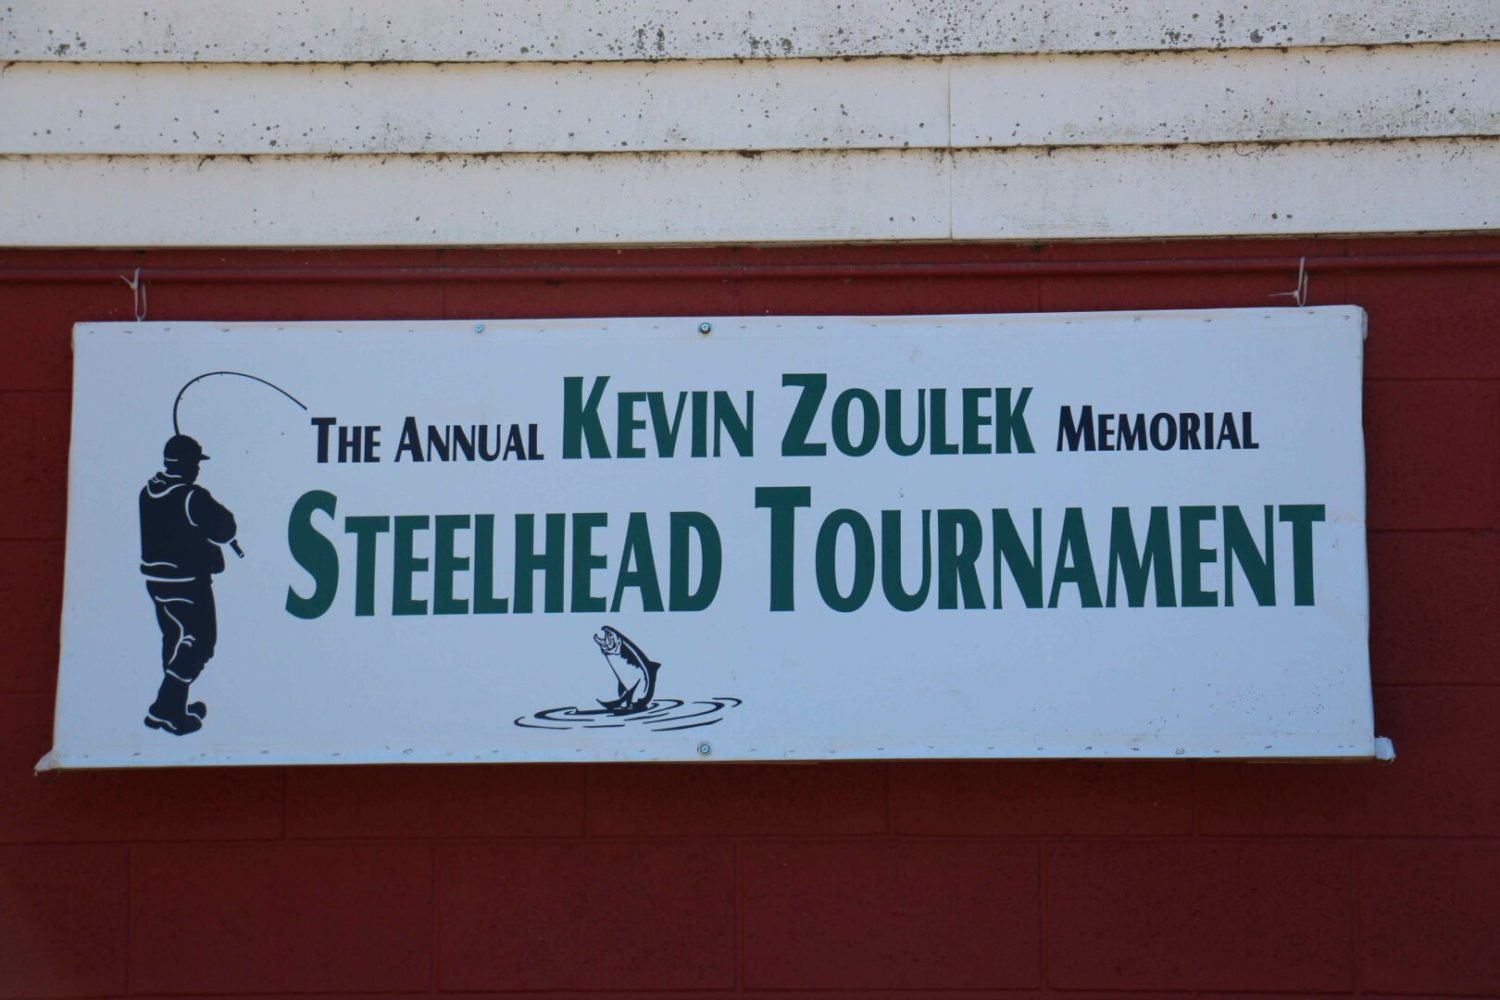 Area anglers turned out in big numbers Saturday for the Kevin Zoulek Memorial Steelhead Tournament